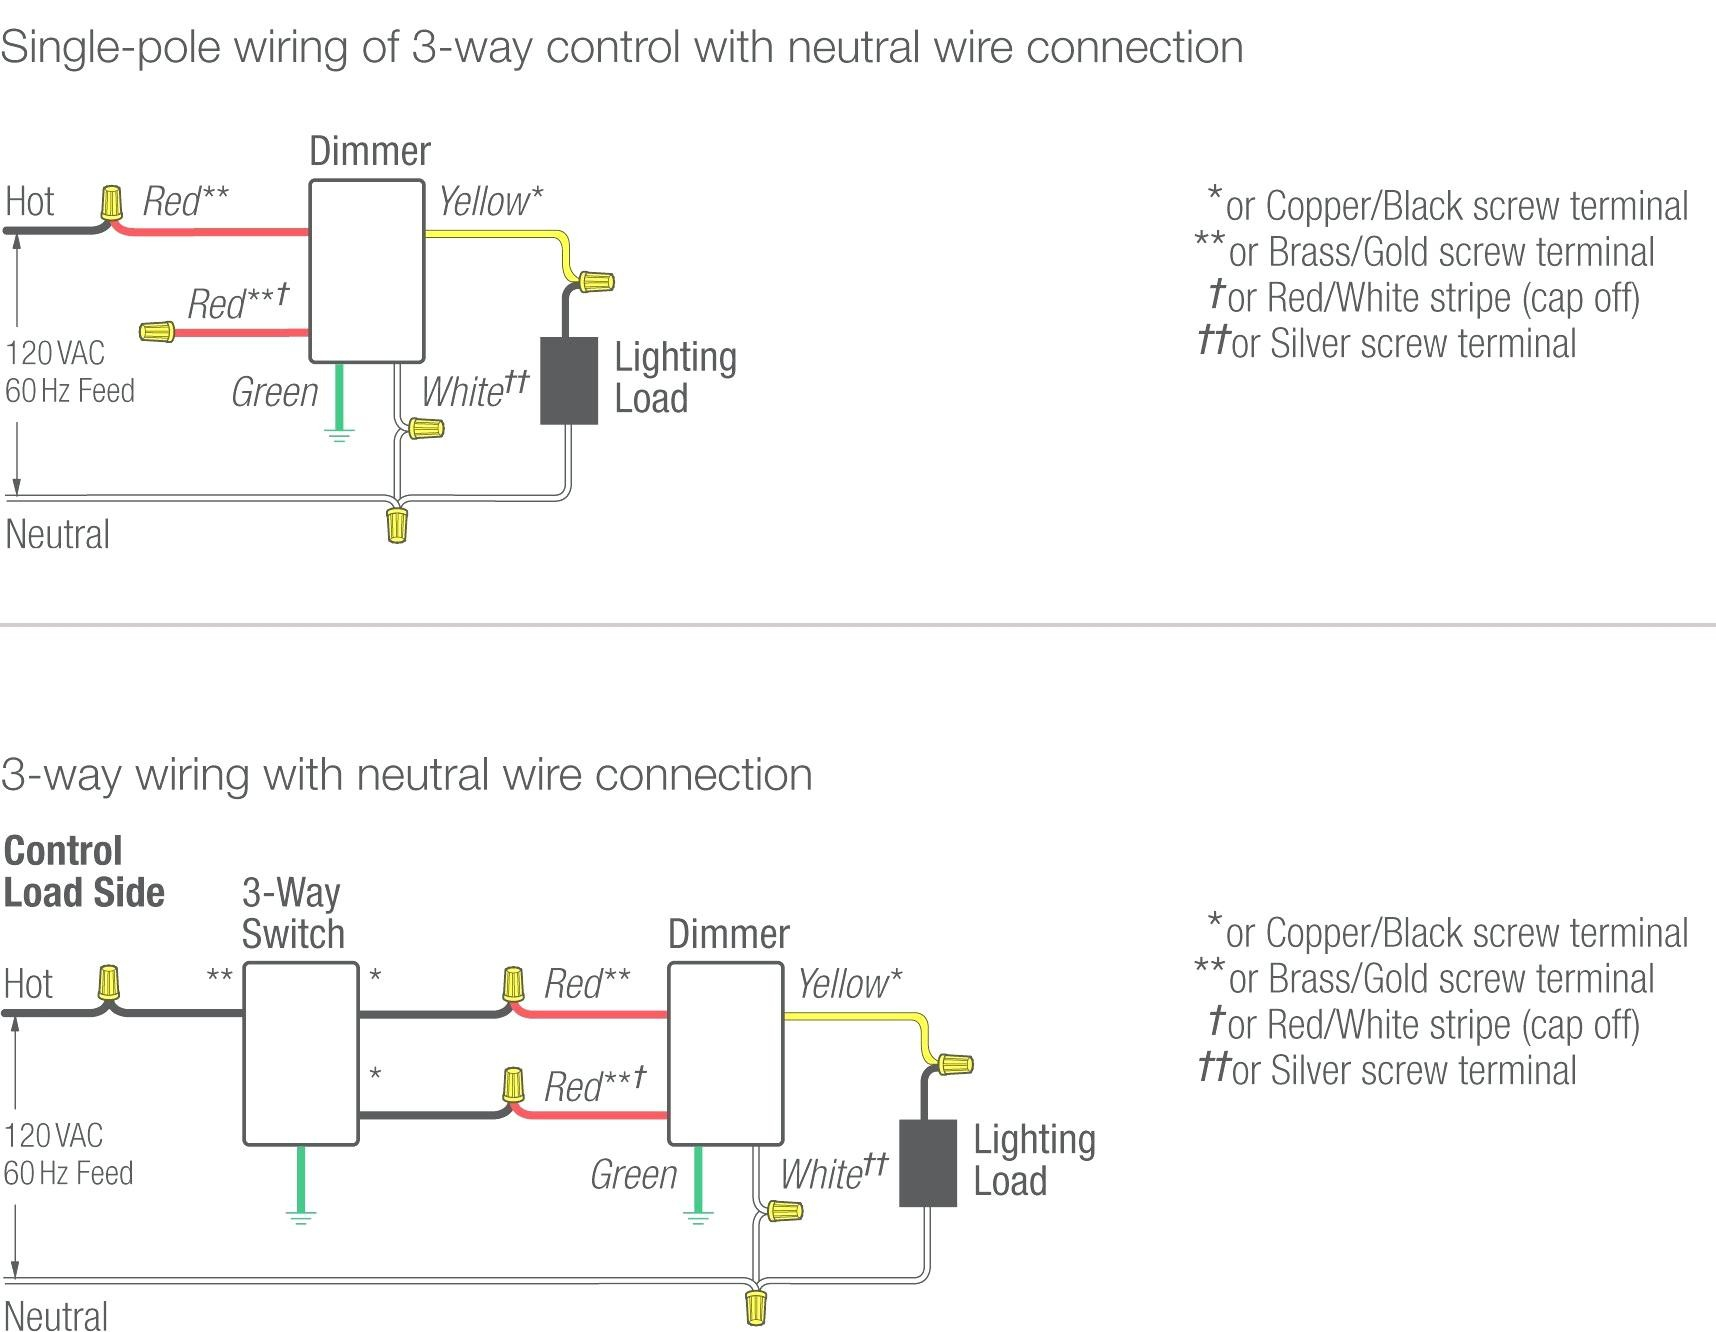 277v ballast wiring diagram Download-wiring diagram of exhaust fan refrence bathroom ideas 277v tov rh wheathill co 480 277V Wiring Diagram Advance Ballast Wiring Diagram 1-m